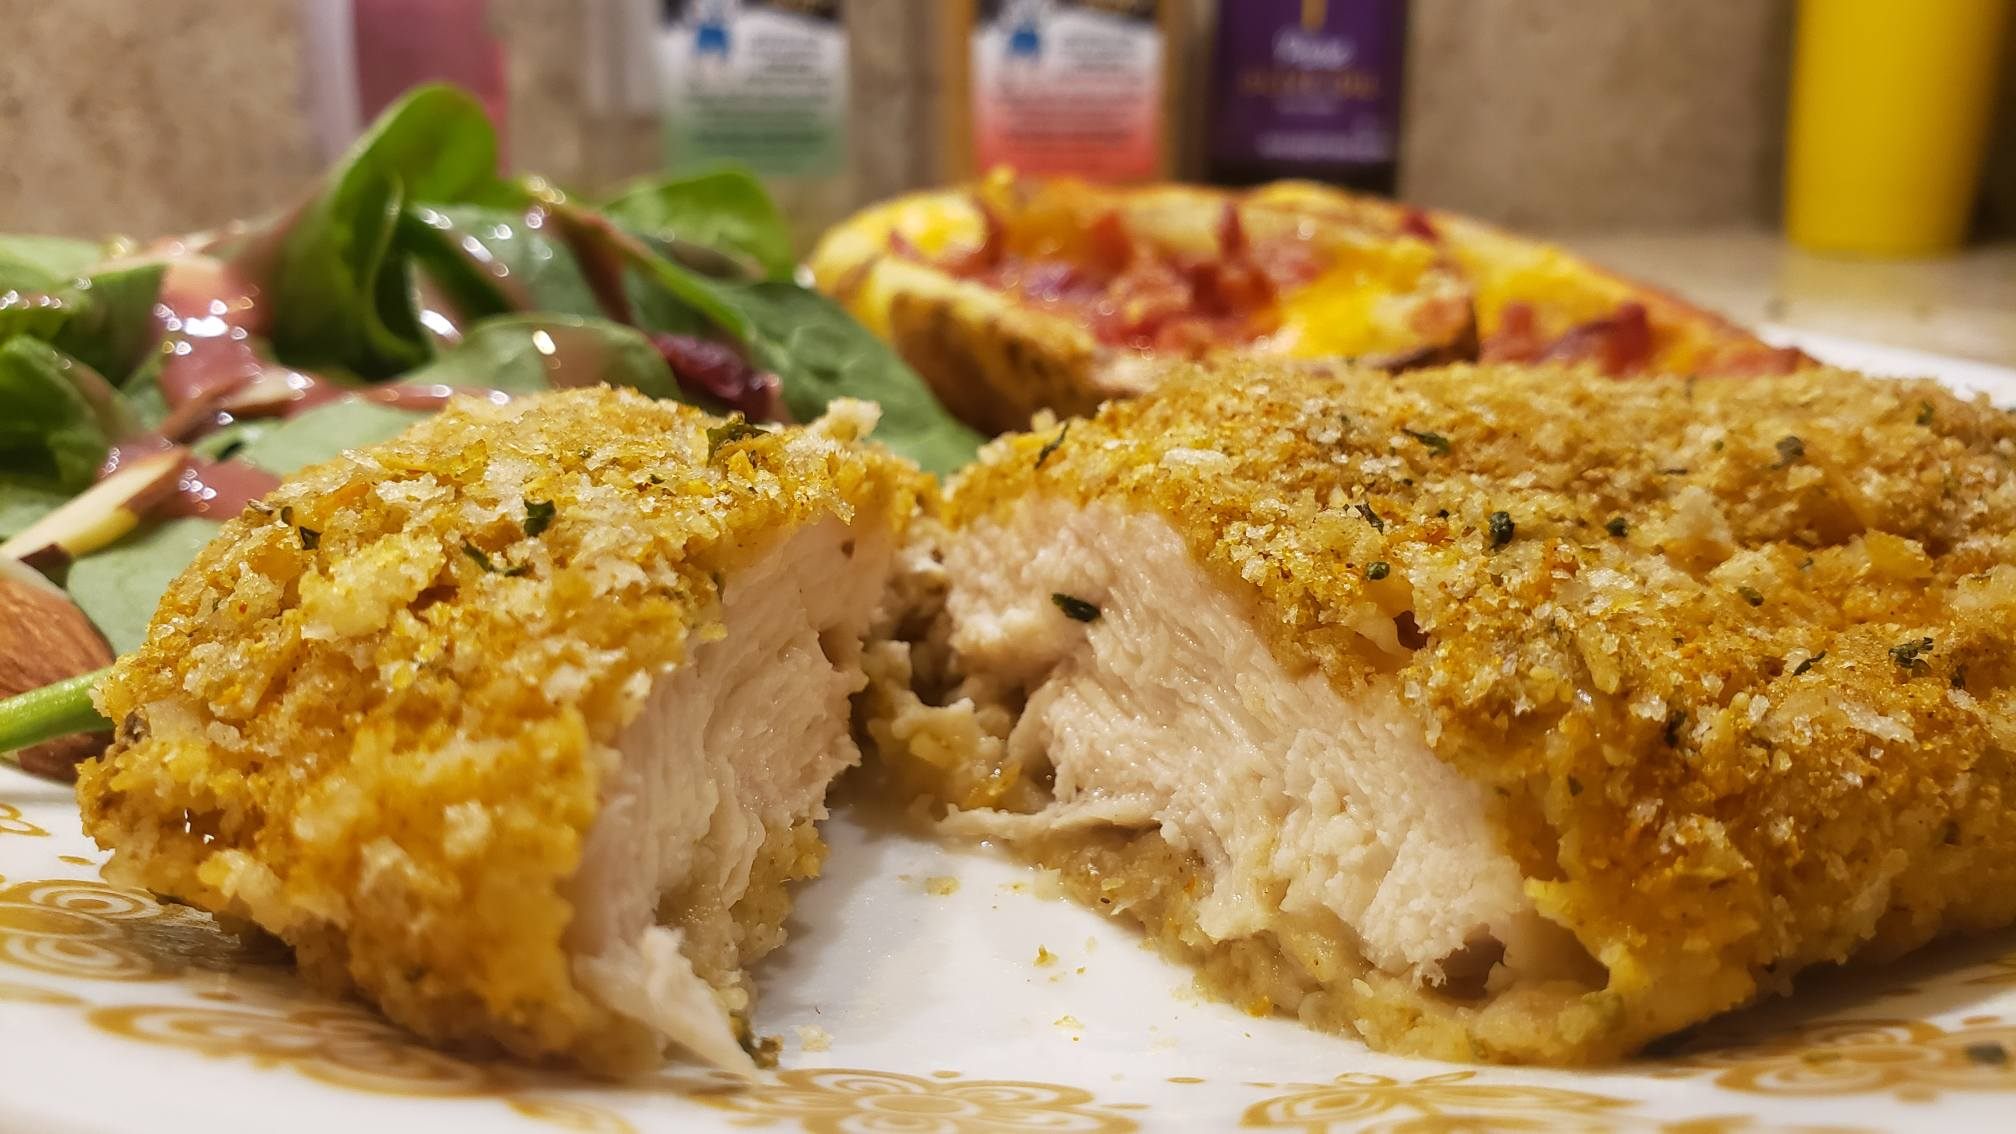 Image of parmesan crusted chicken on a plate with sides